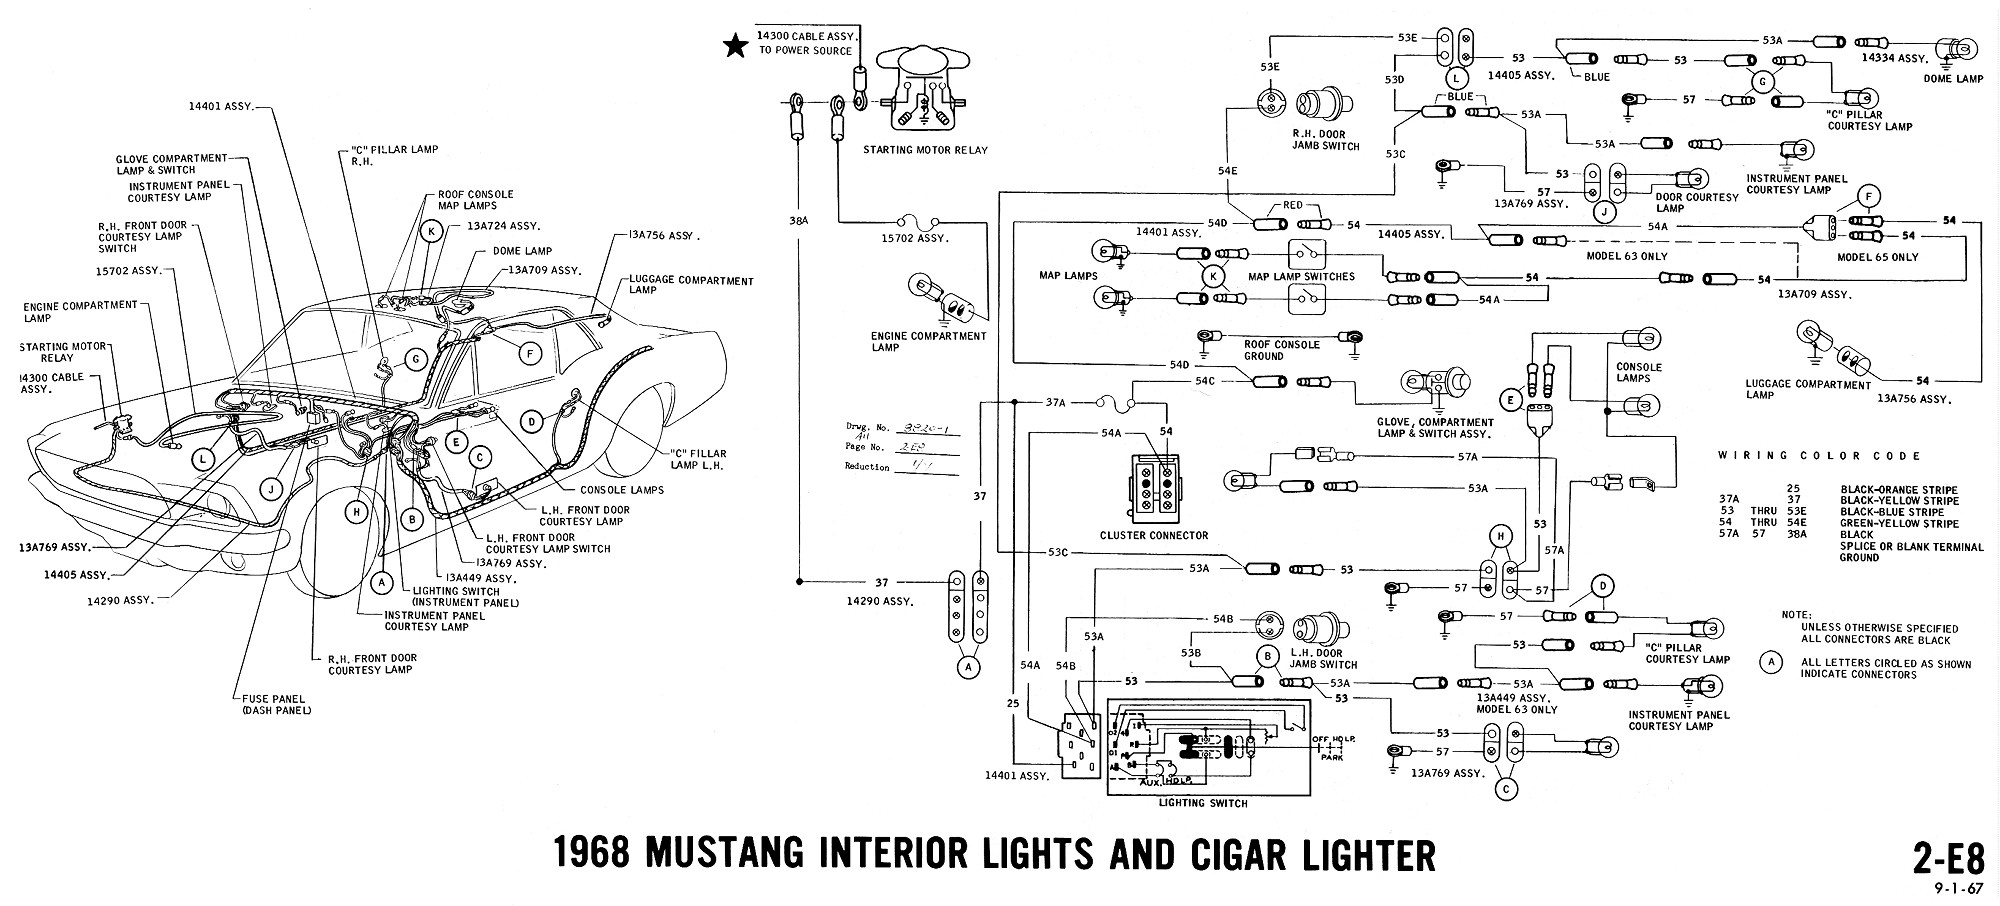 Tremendous 1965 Ford Mustang Wiring Wiring Diagram Wiring Digital Resources Ommitdefiancerspsorg